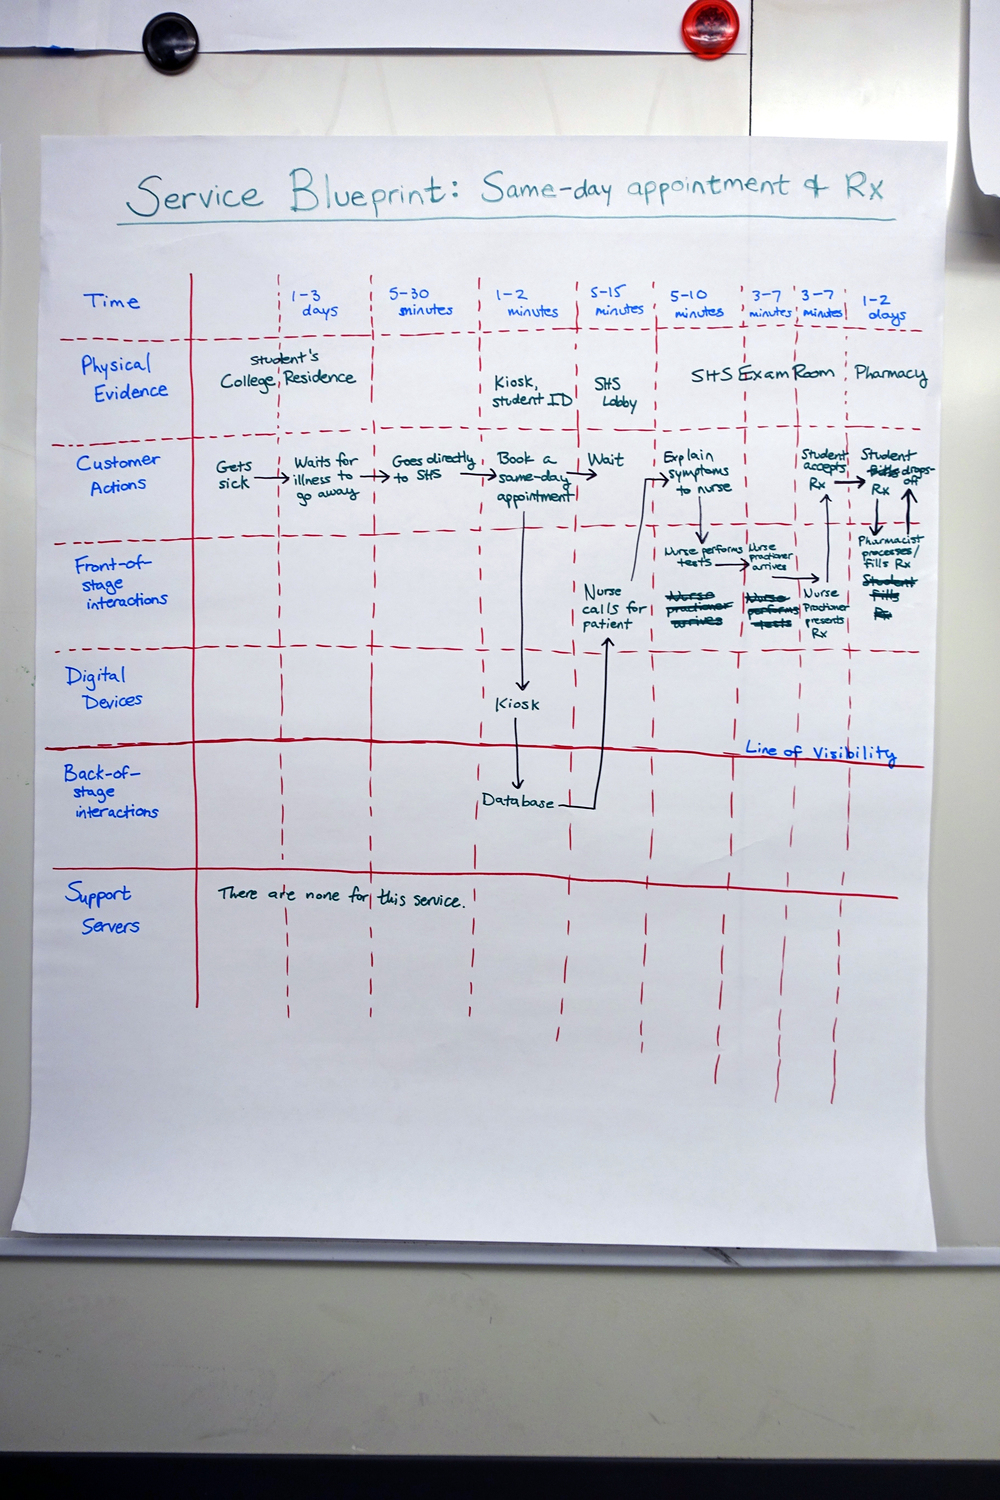 Service Blueprint of RX & Appointments